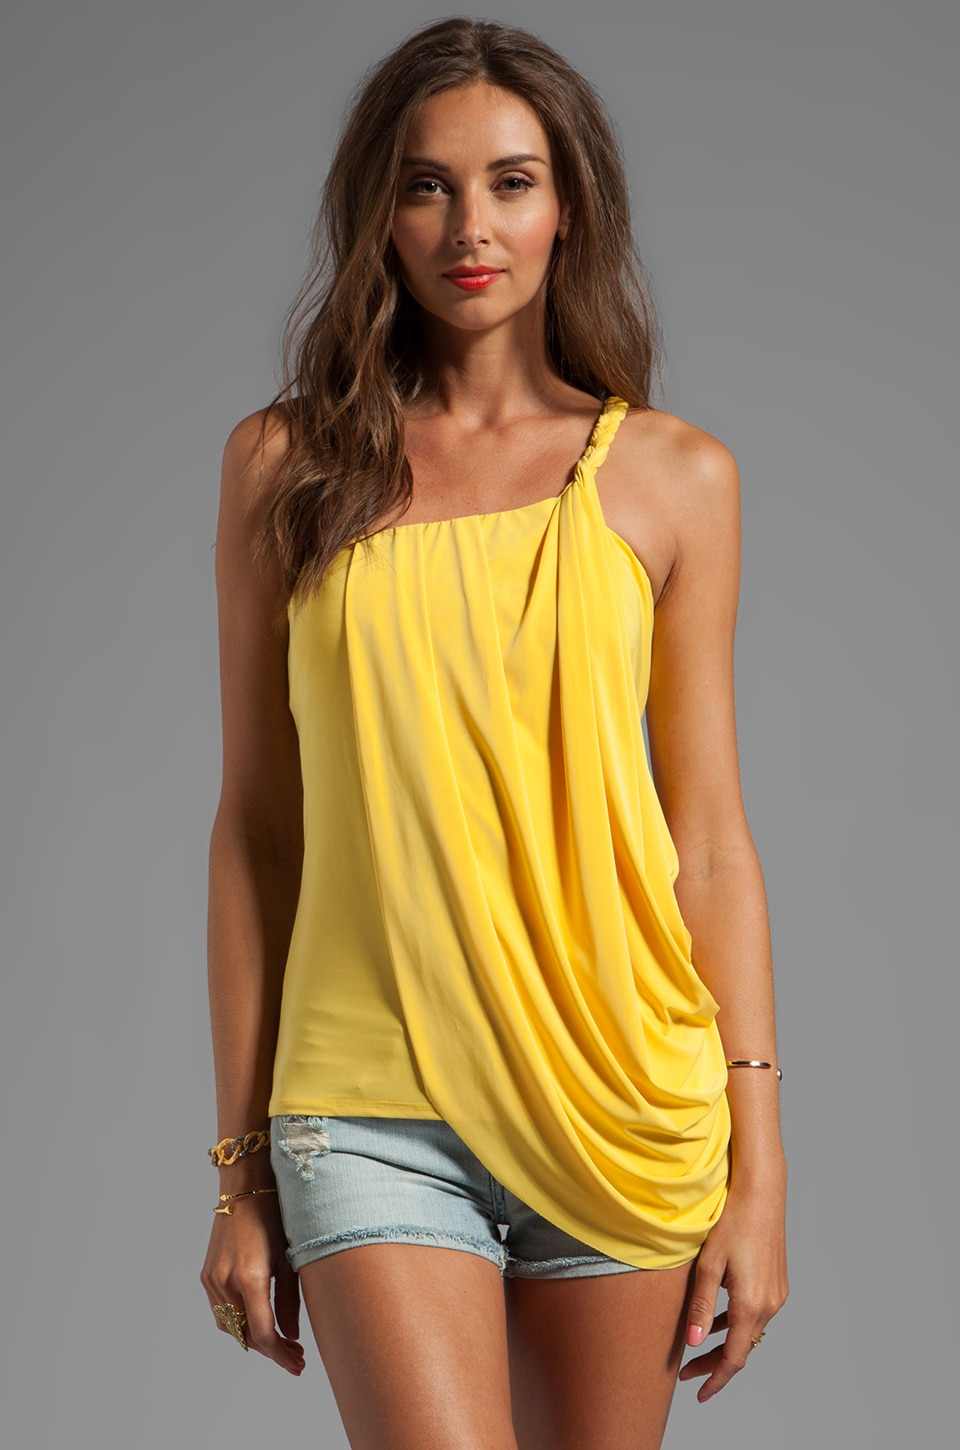 T-Bags LosAngeles One Shoulder Side Drape Tank in Yellow